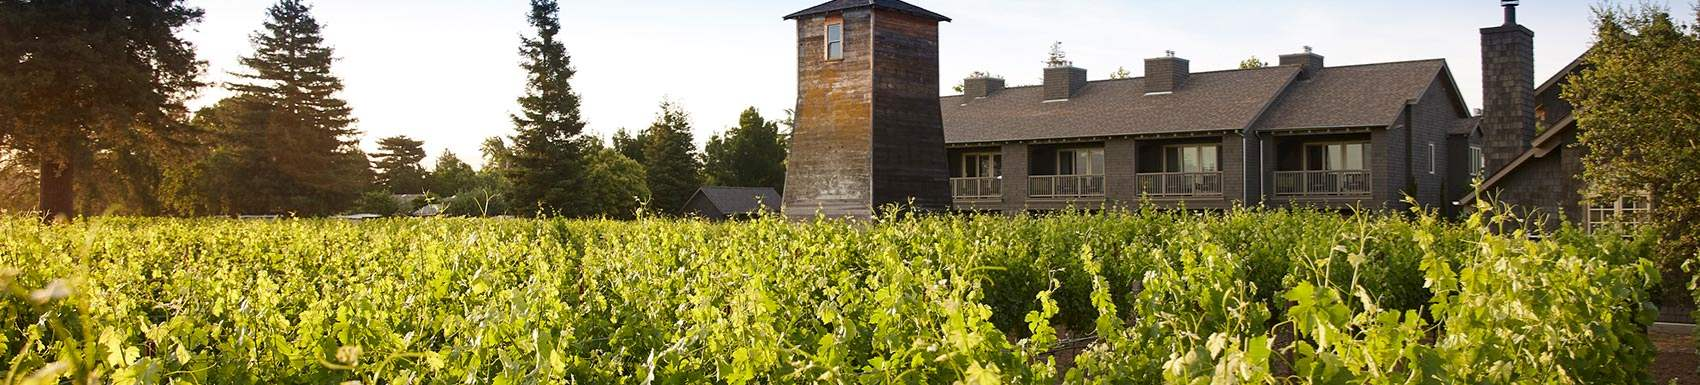 Napa, California nearby Attractions & Wineries